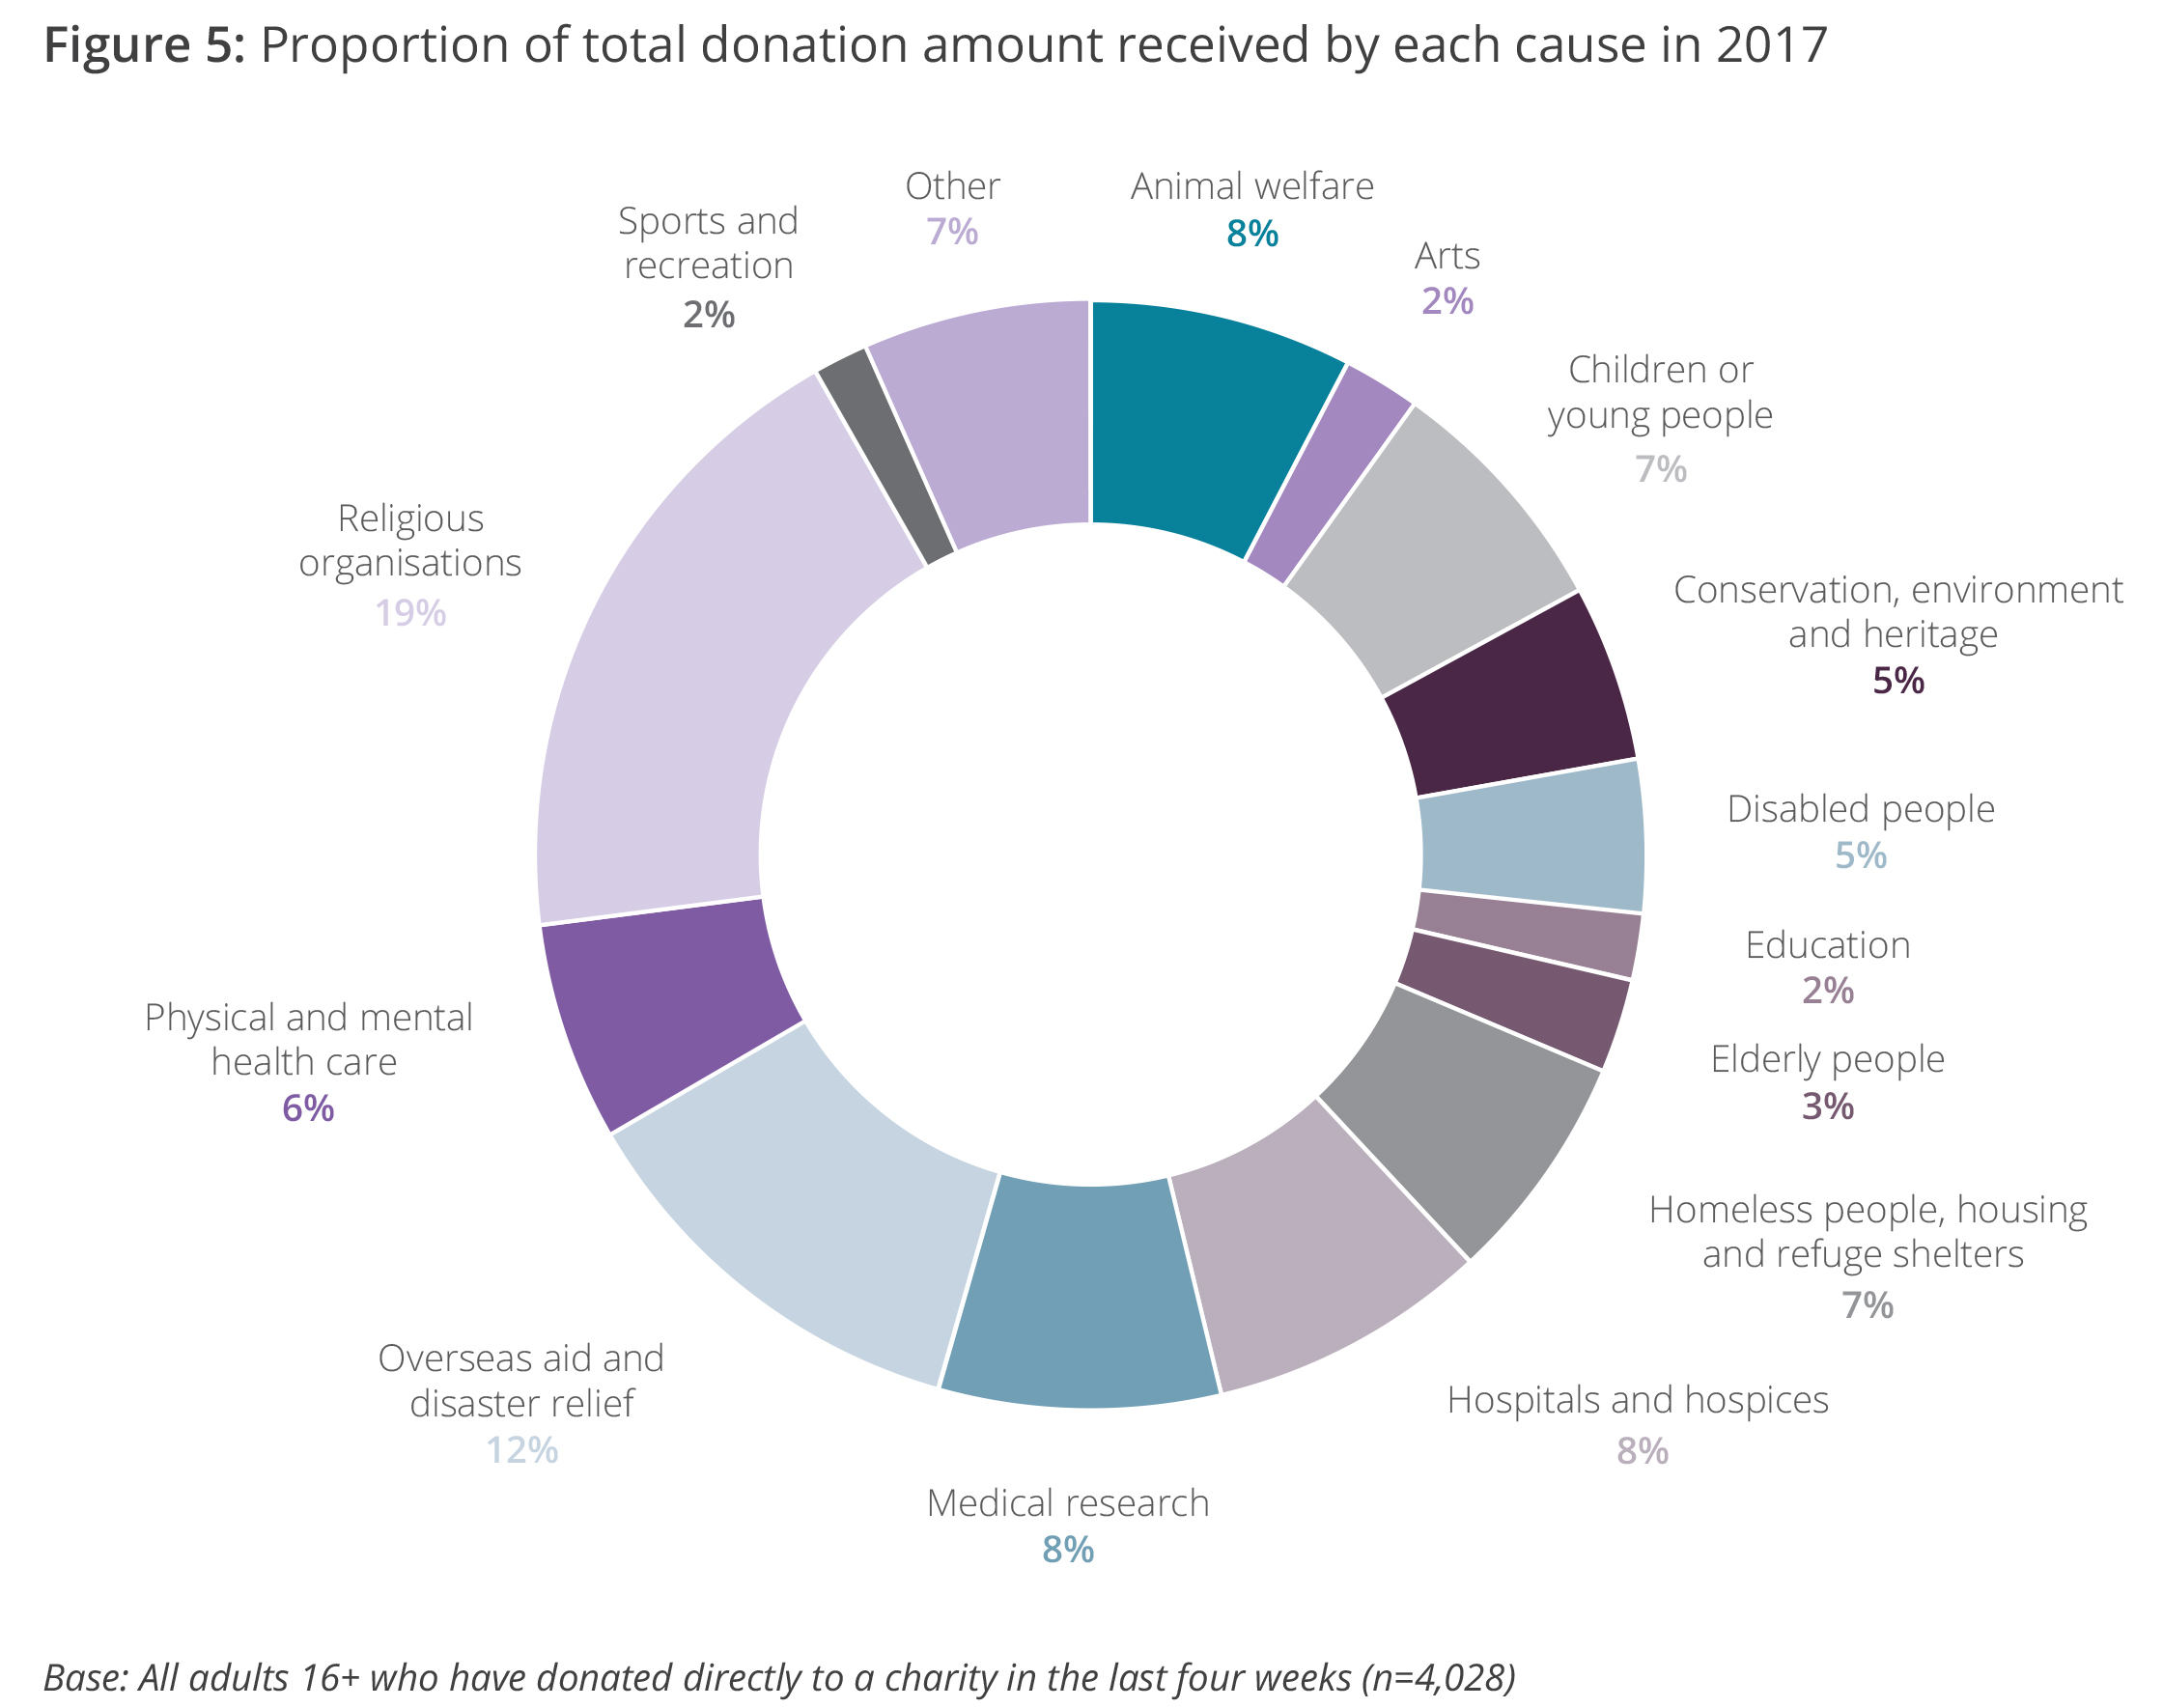 Proportion of total donation amount received by each cause in 2017